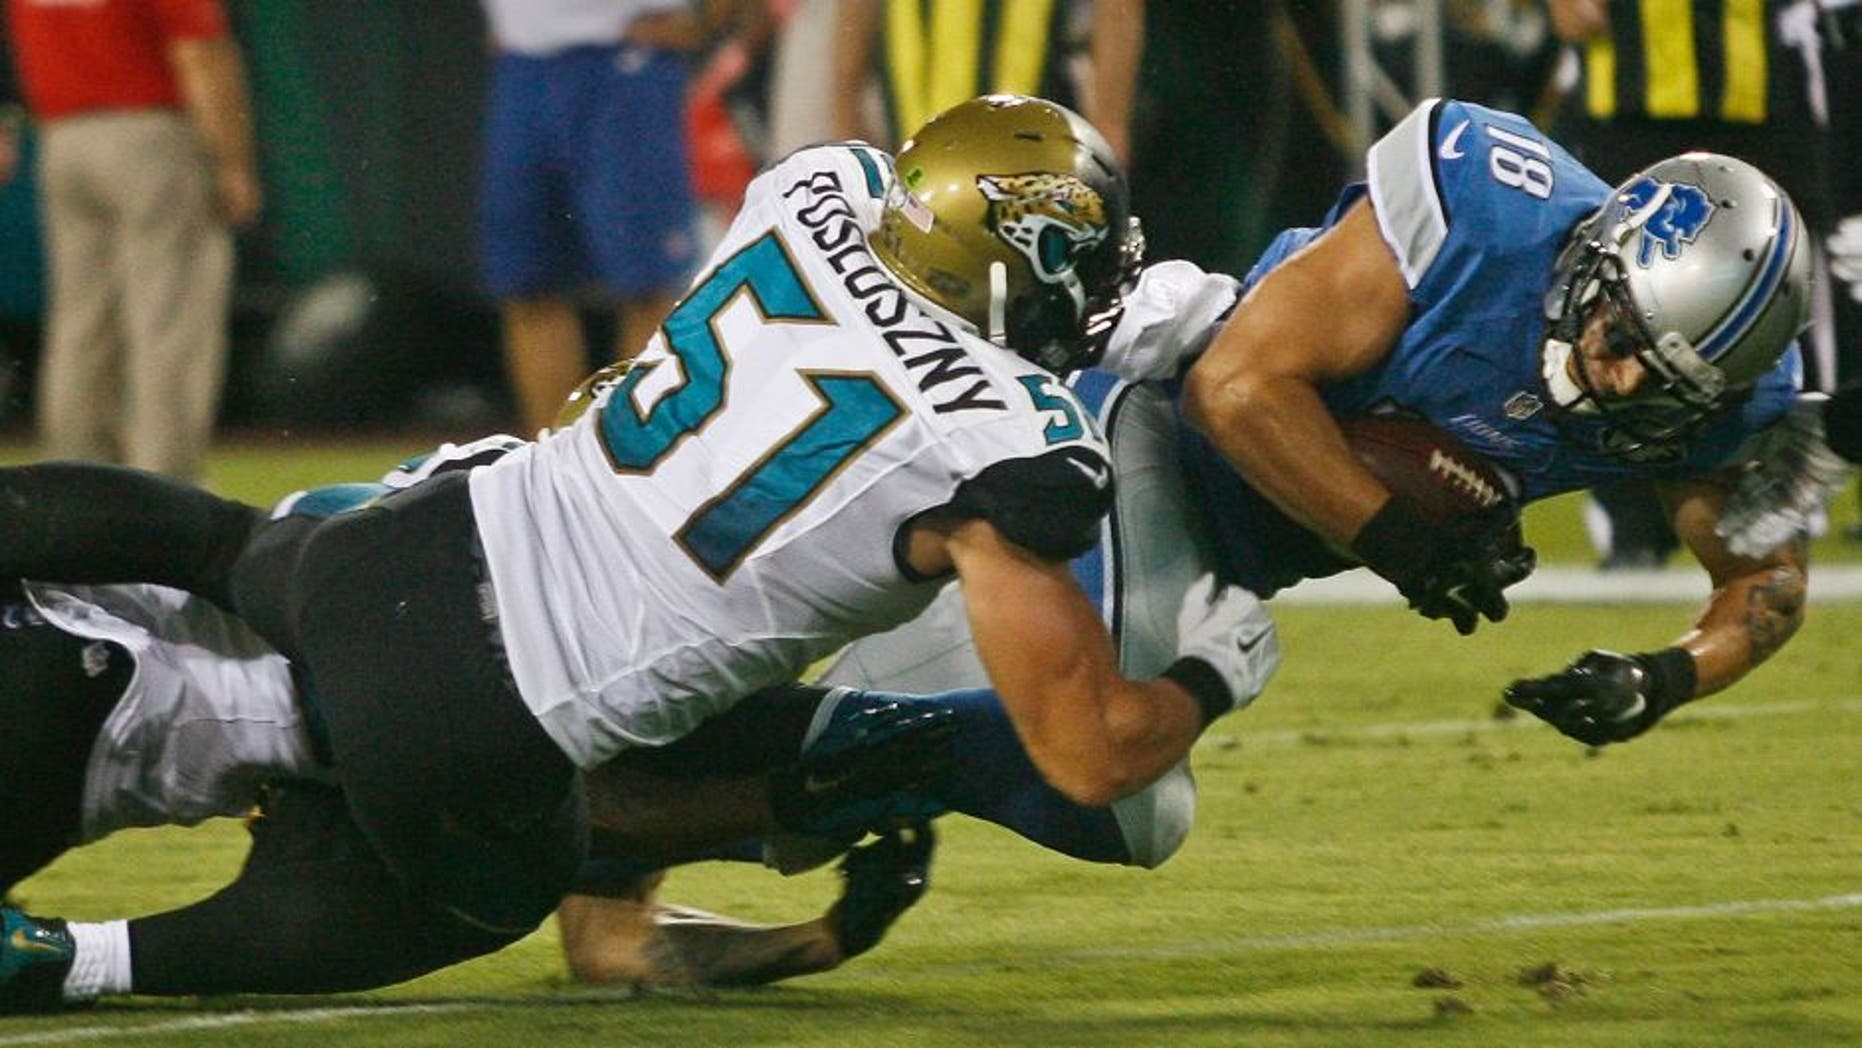 Aug 28, 2015; Jacksonville, FL, USA; Detroit Lions wide receiver Greg Salas (18) dives for extra yardage as Jacksonville Jaguars linebacker Paul Posluszny (51) tackles in the second quarter of a preseason NFL football game at EverBank Field. Mandatory Credit: Phil Sears-USA TODAY Sports